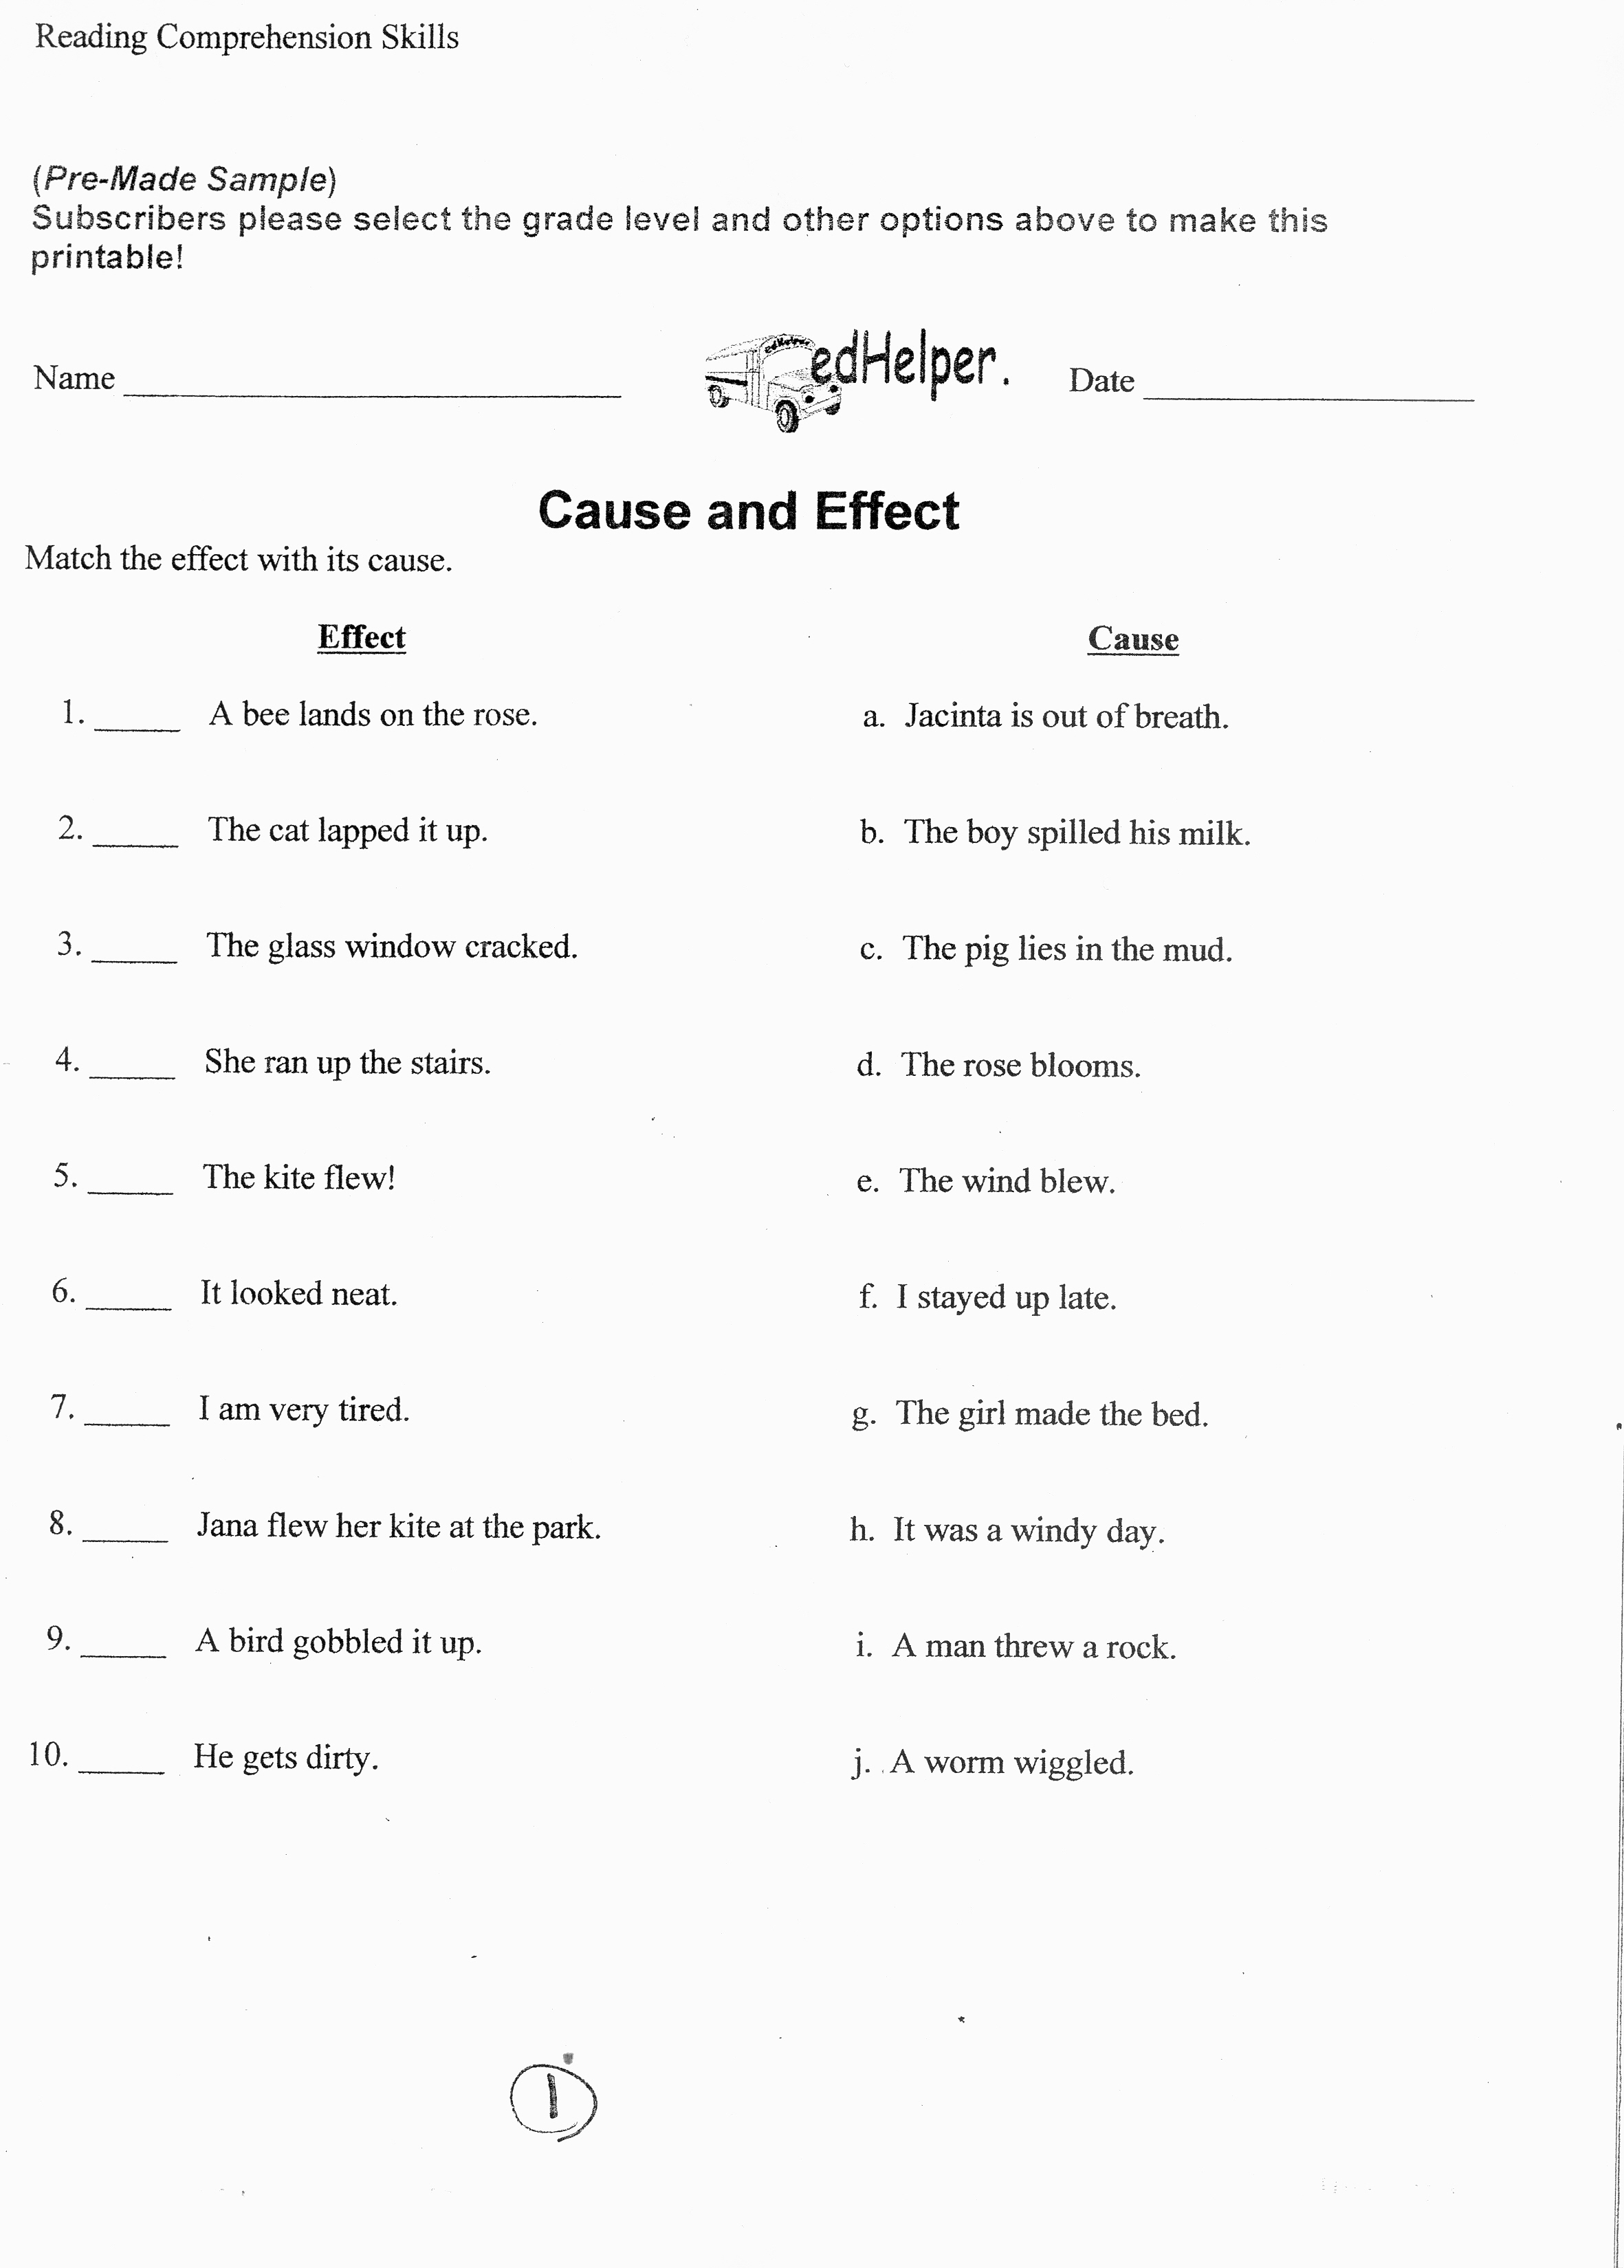 Worksheets Language Arts Worksheets For 6th Grade 6th grade lessons middle school language arts help cause and effect worksheet